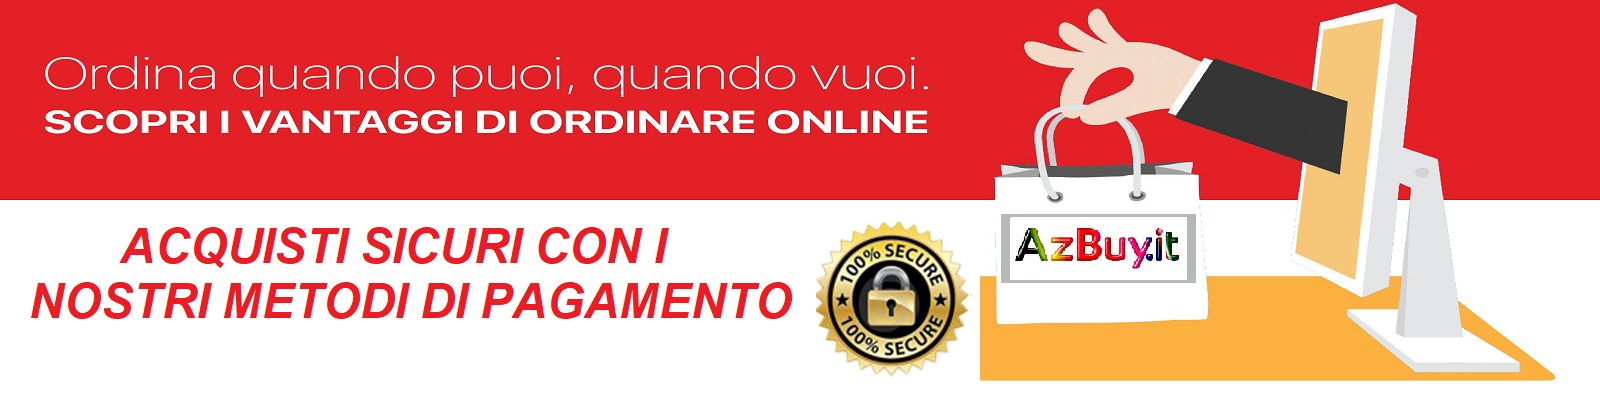 https://www.azbuy.it/modalita-di-pagamento/